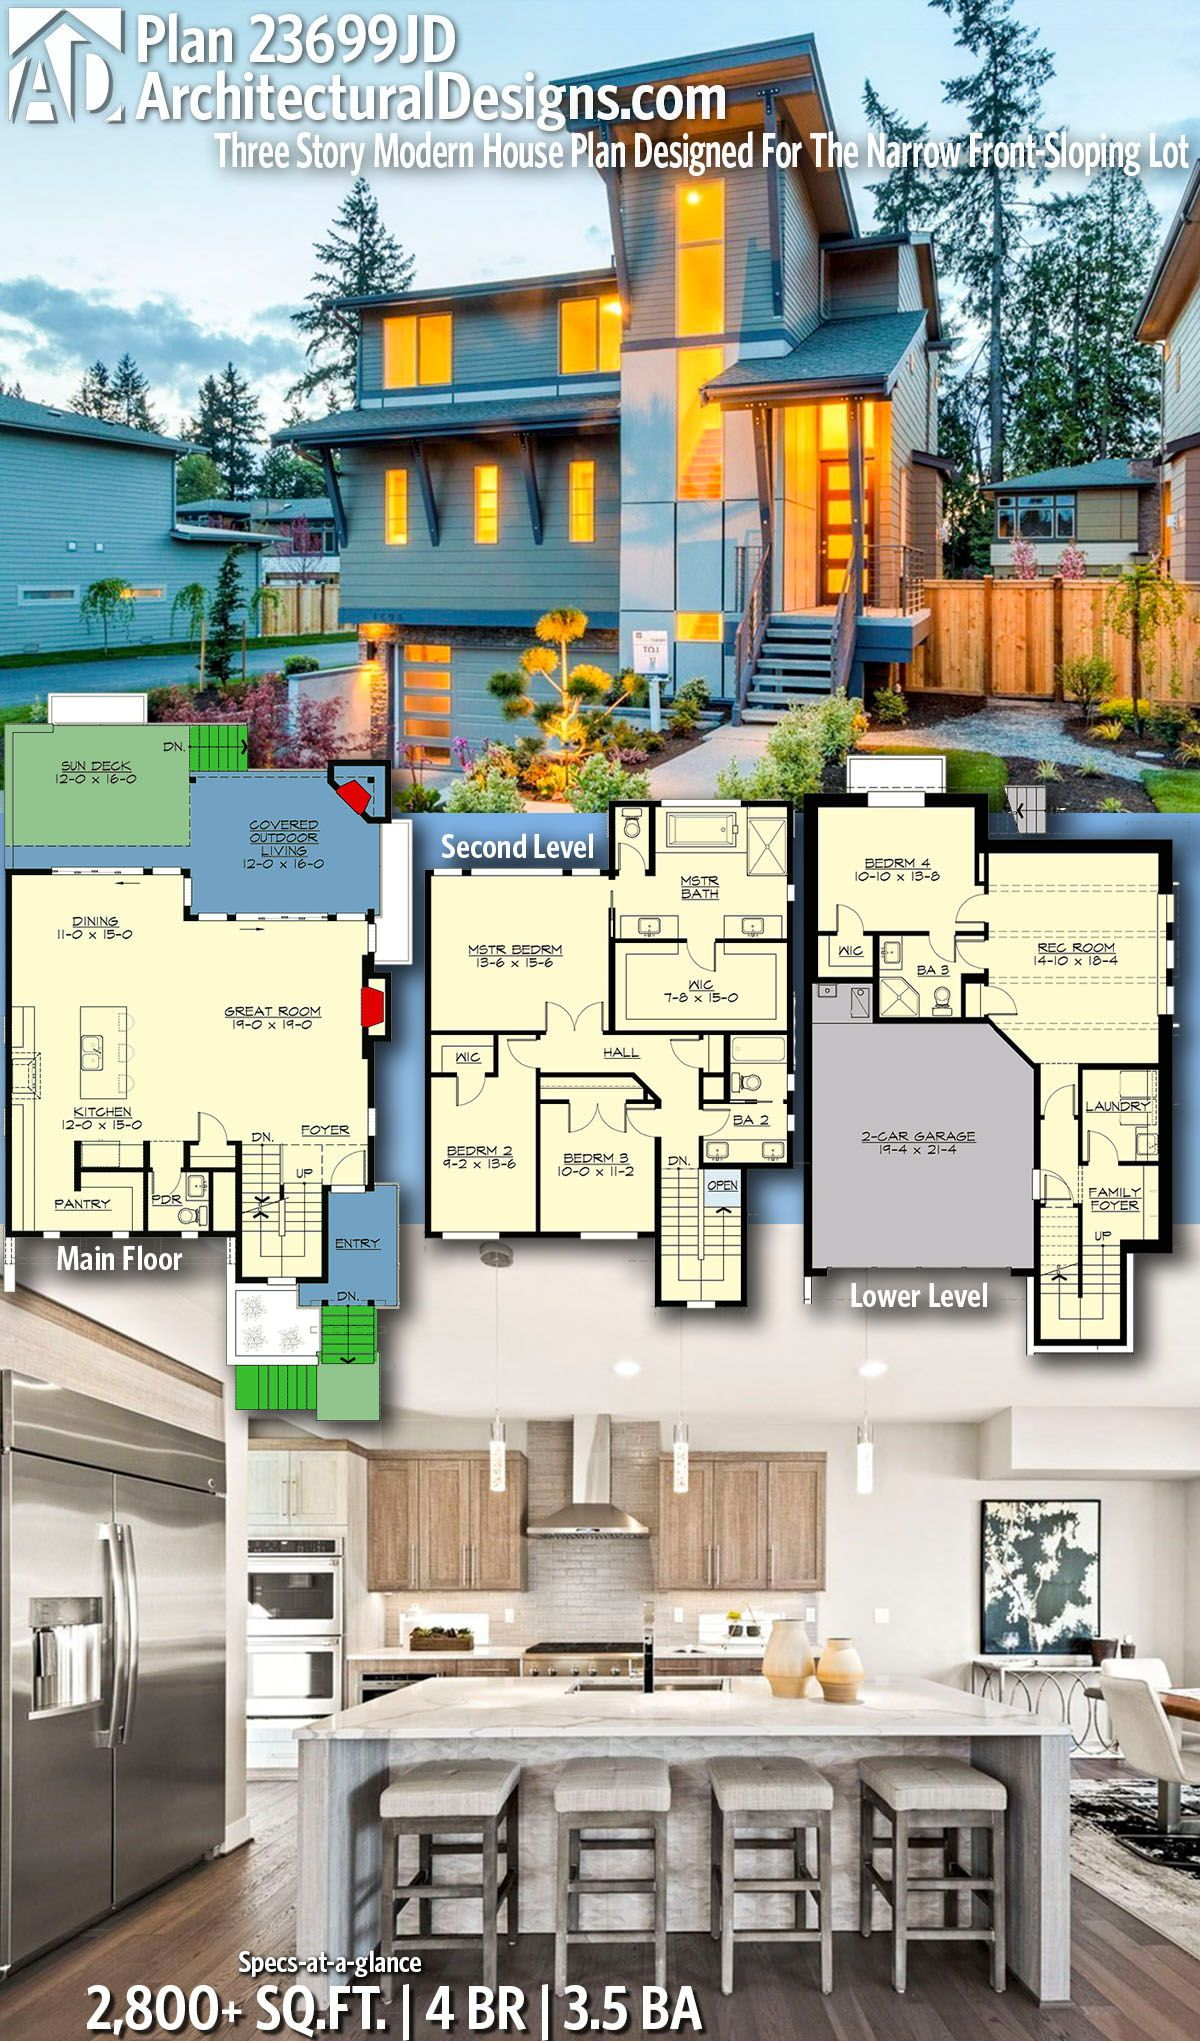 Plan 23699jd Three Story Modern House Plan Designed For The Narrow Front Sloping Lot Architectural House Plans Model House Plan House Construction Plan